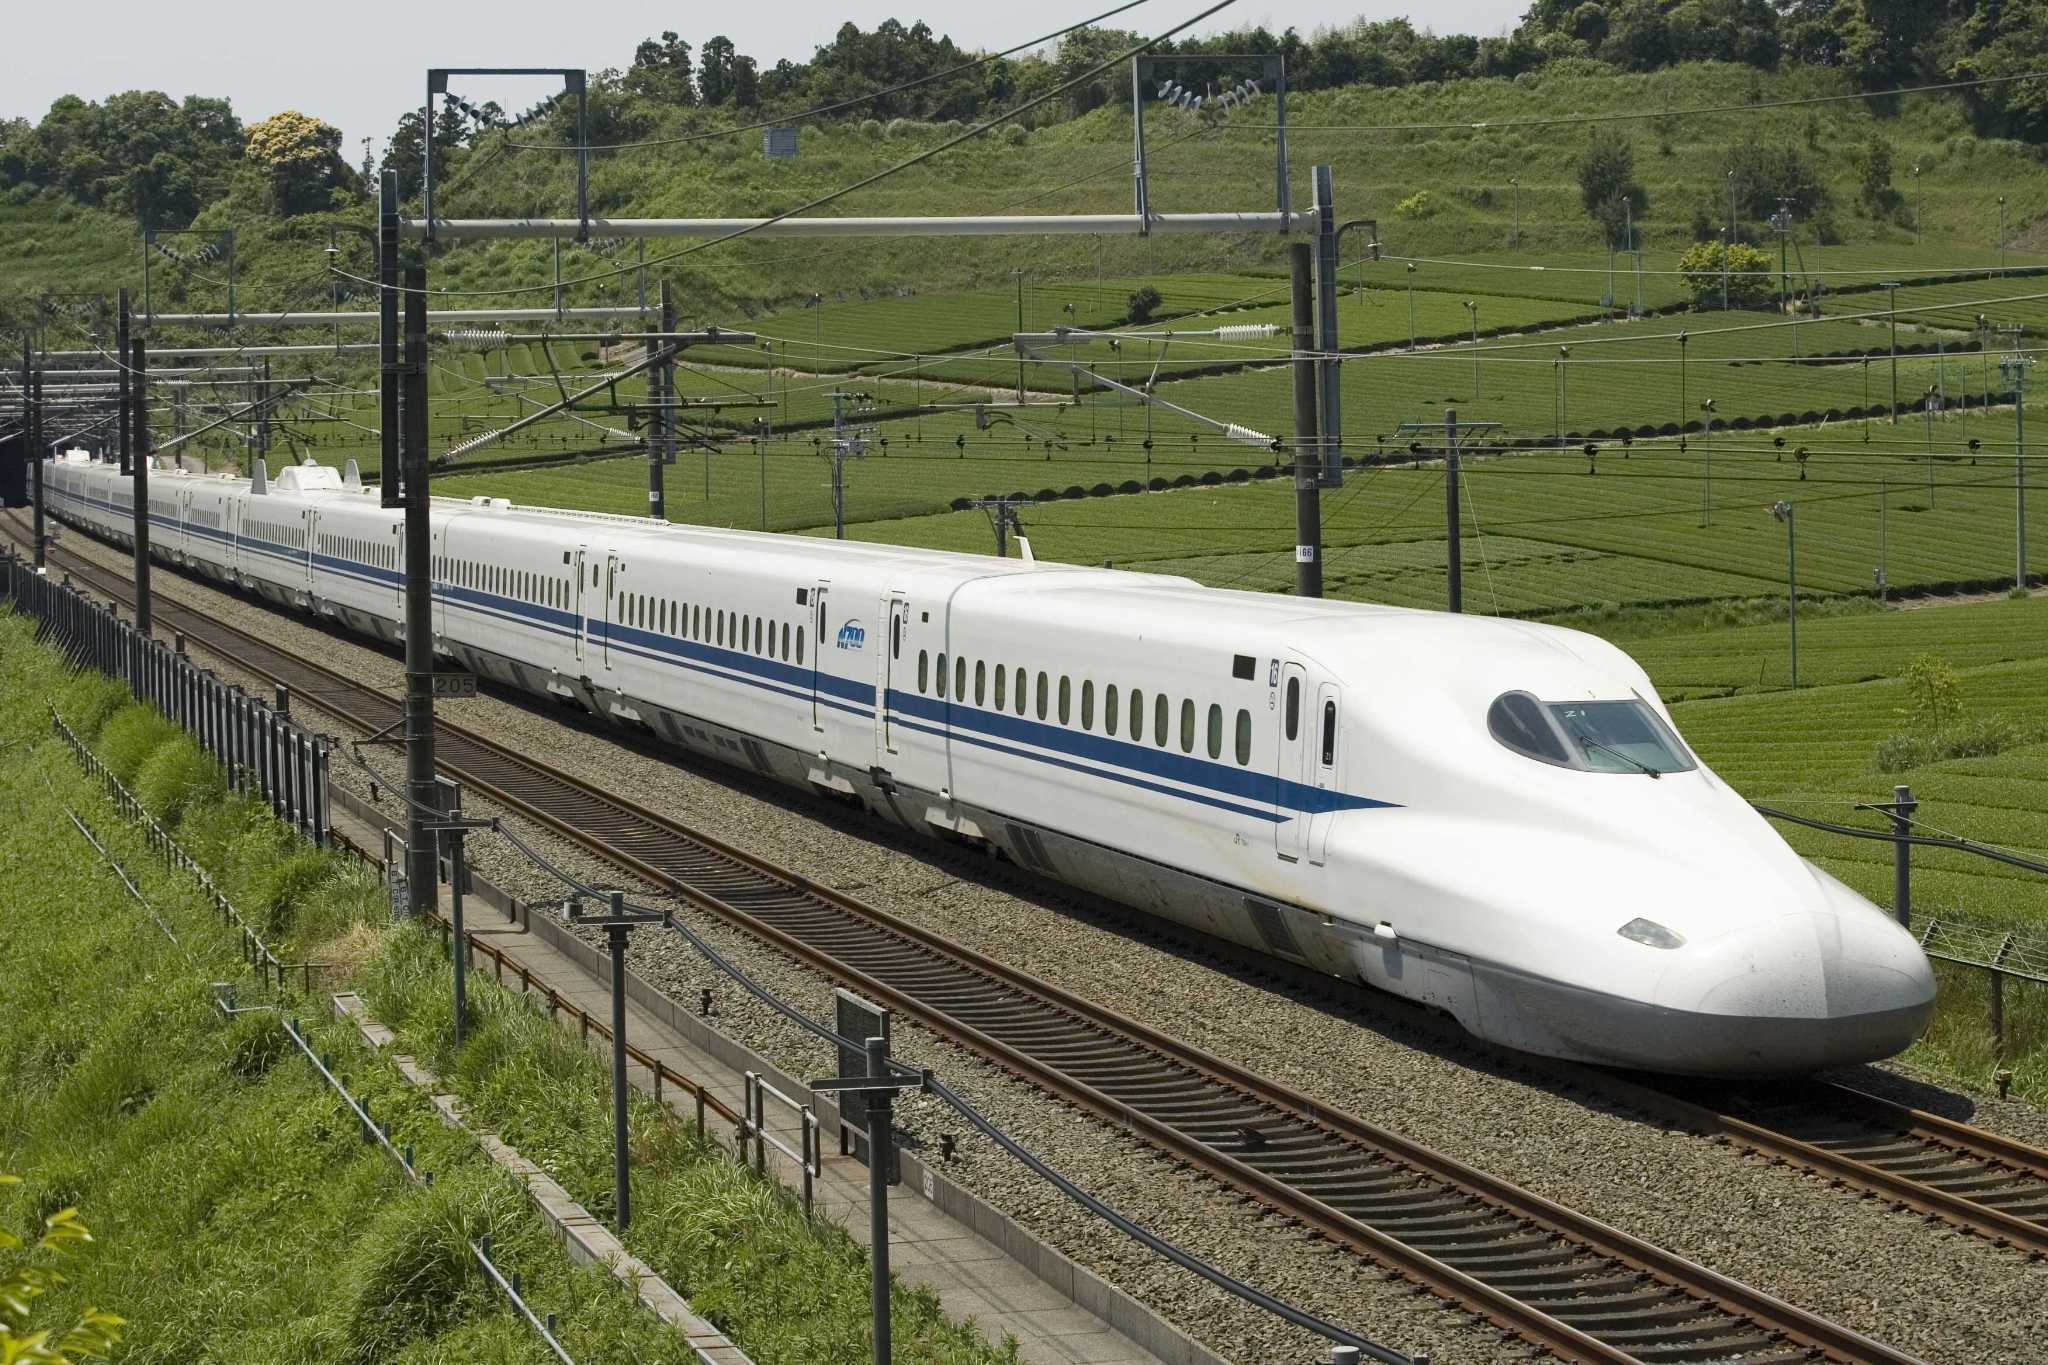 Houston-Dallas bullet train clears hurdle with environmental impact statement